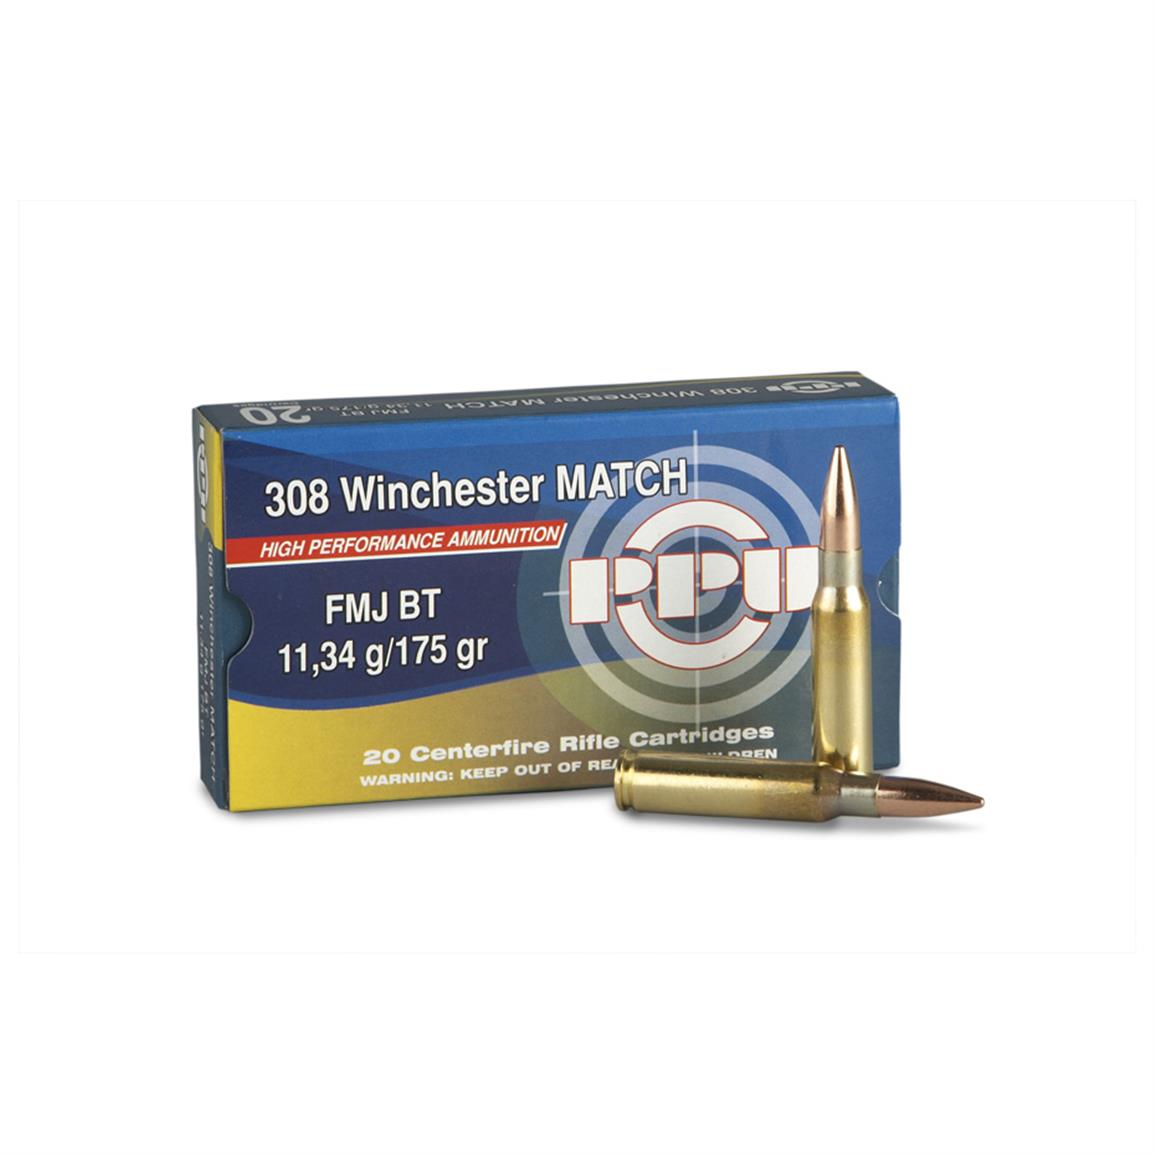 PPU .308 Win. 175 Grain Match FMJ BT 20 rounds